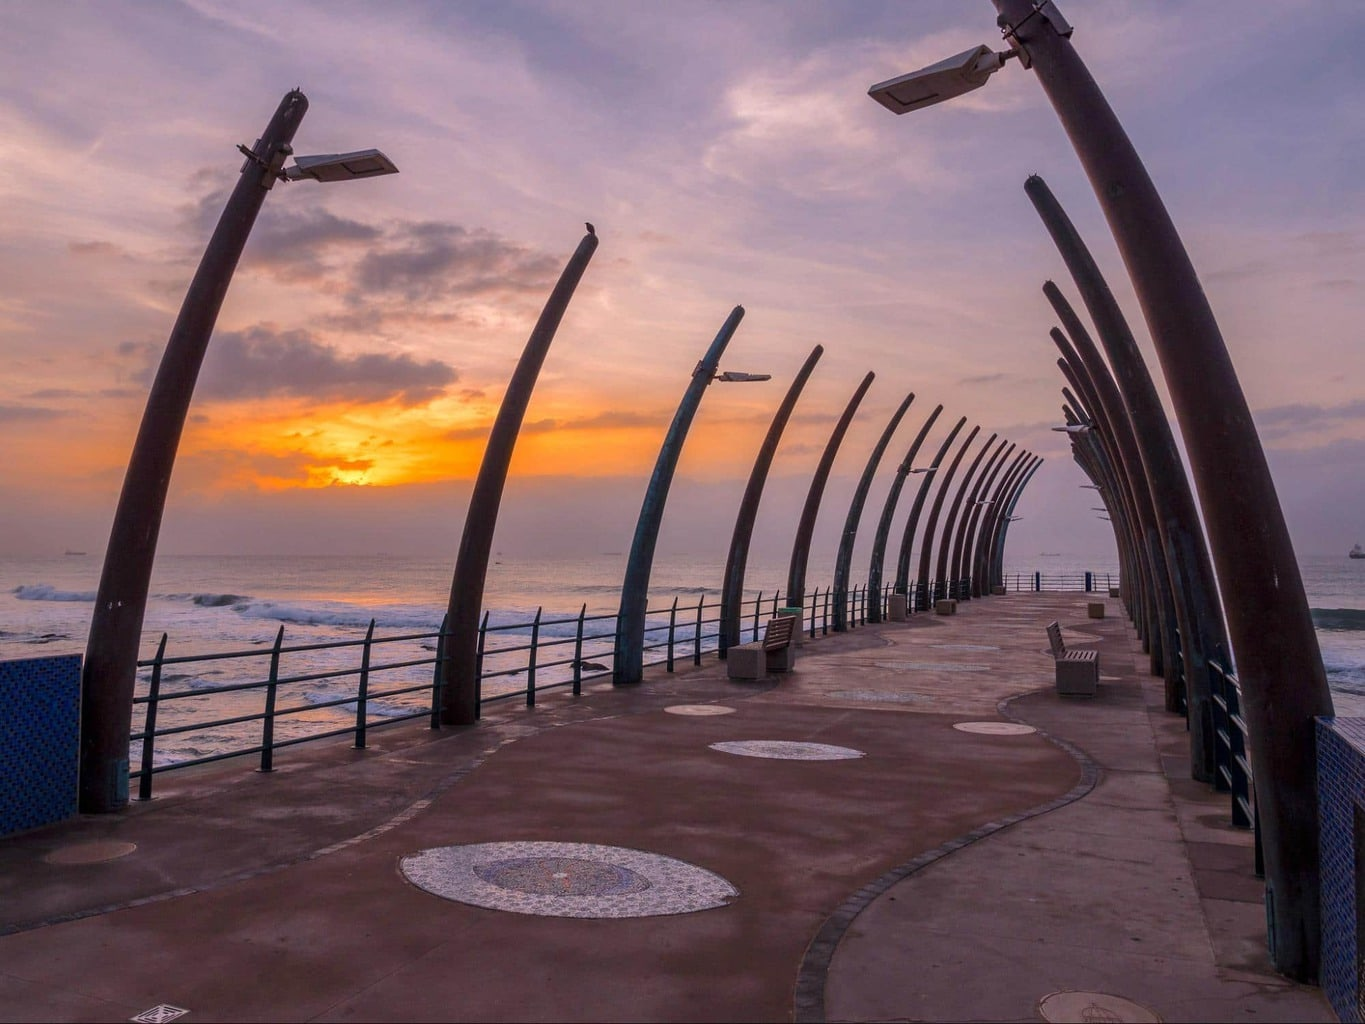 The pier at Umhlanga